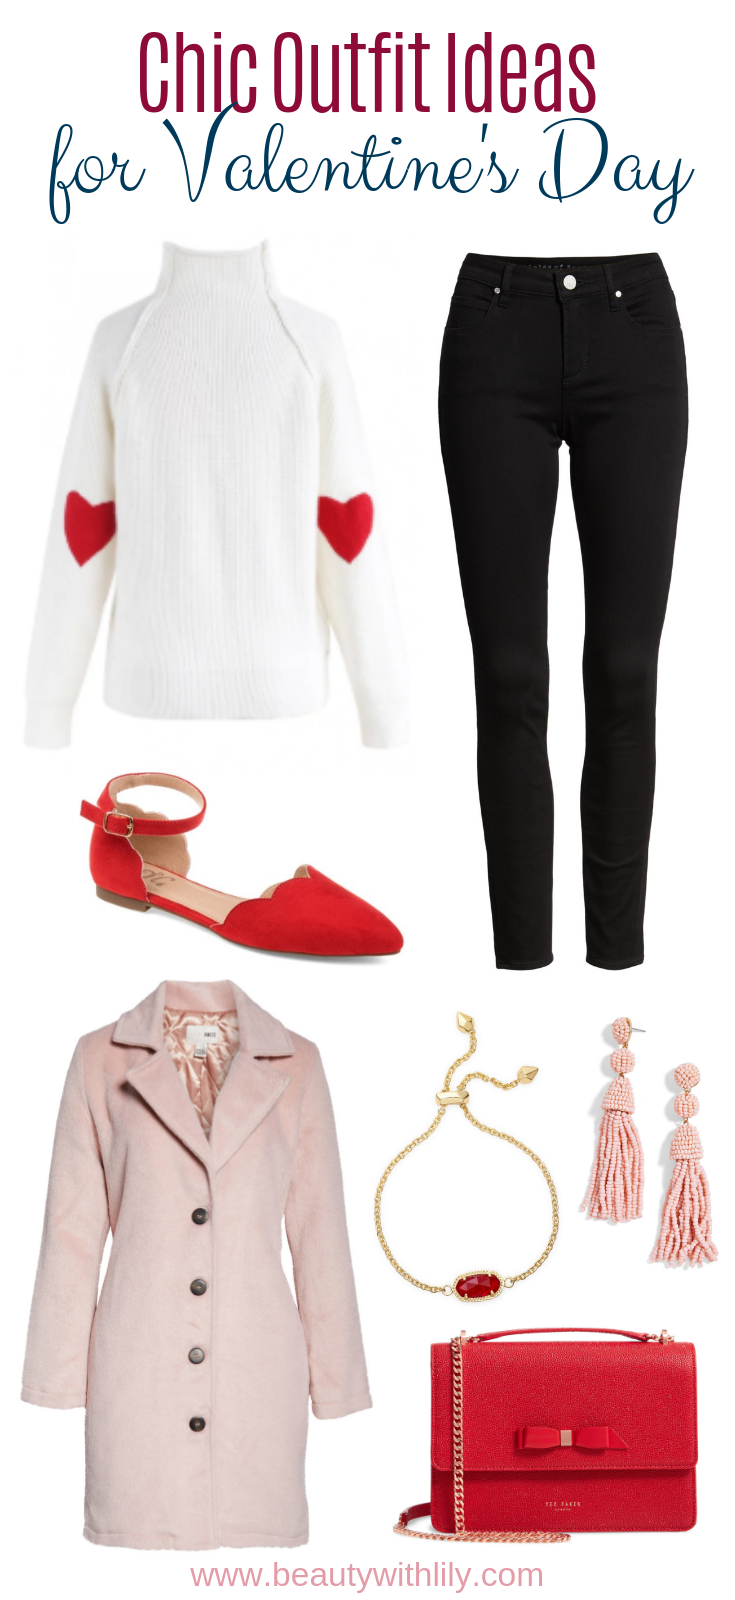 Chic Valentine's Day Outfit Ideas // Girly Outfit Ideas // Winter Outfit Ideas // Fashion Inspiration // Valentine's Day Fashion | Beauty With Lily | #fashionblogger #valentinesdayfashion #outfitinspiration